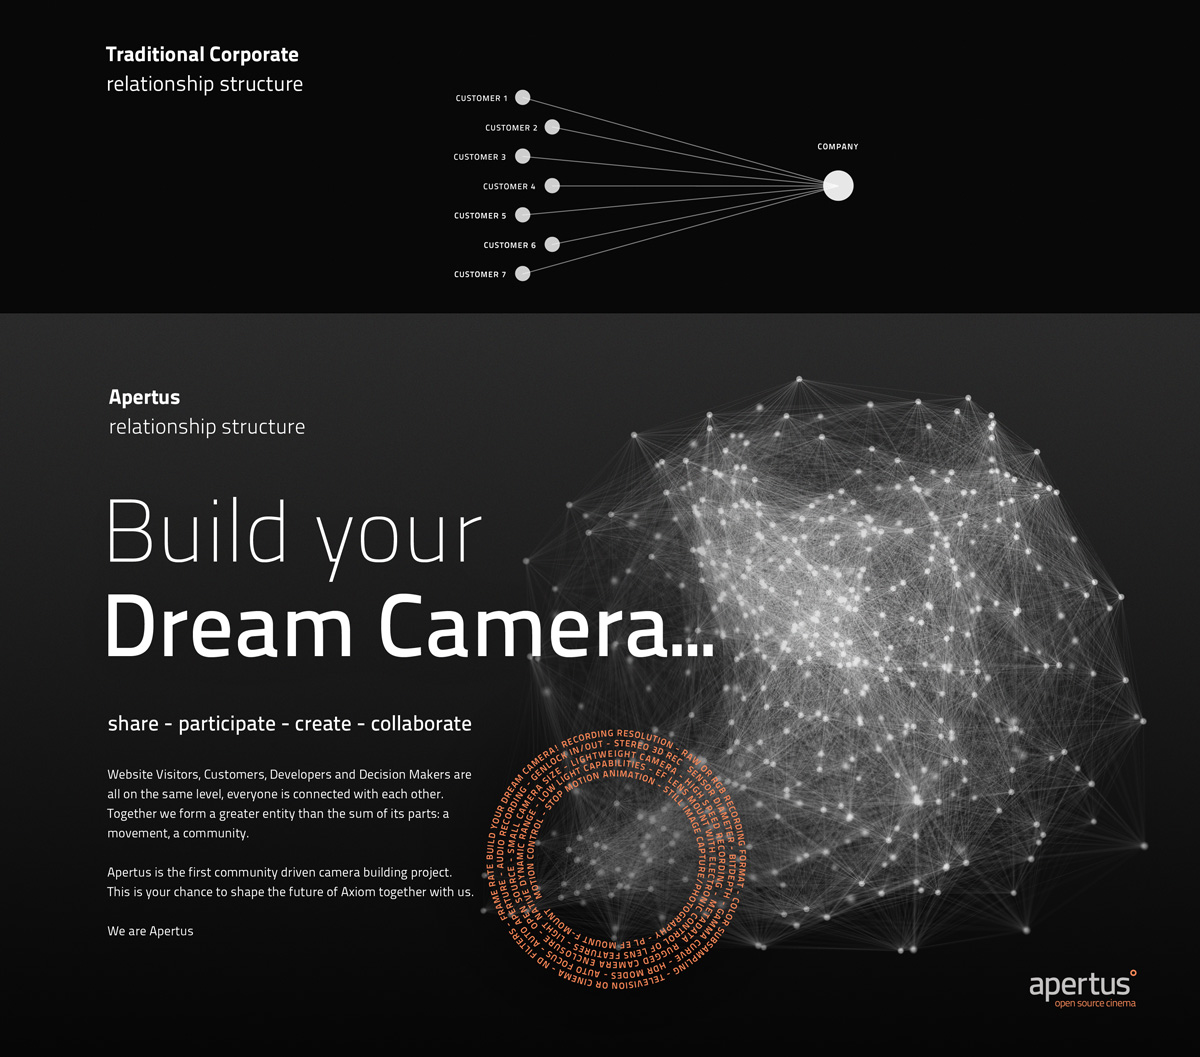 How AXIOM Seeks to Liberate Cinema CamerasHow AXIOM Seeks to